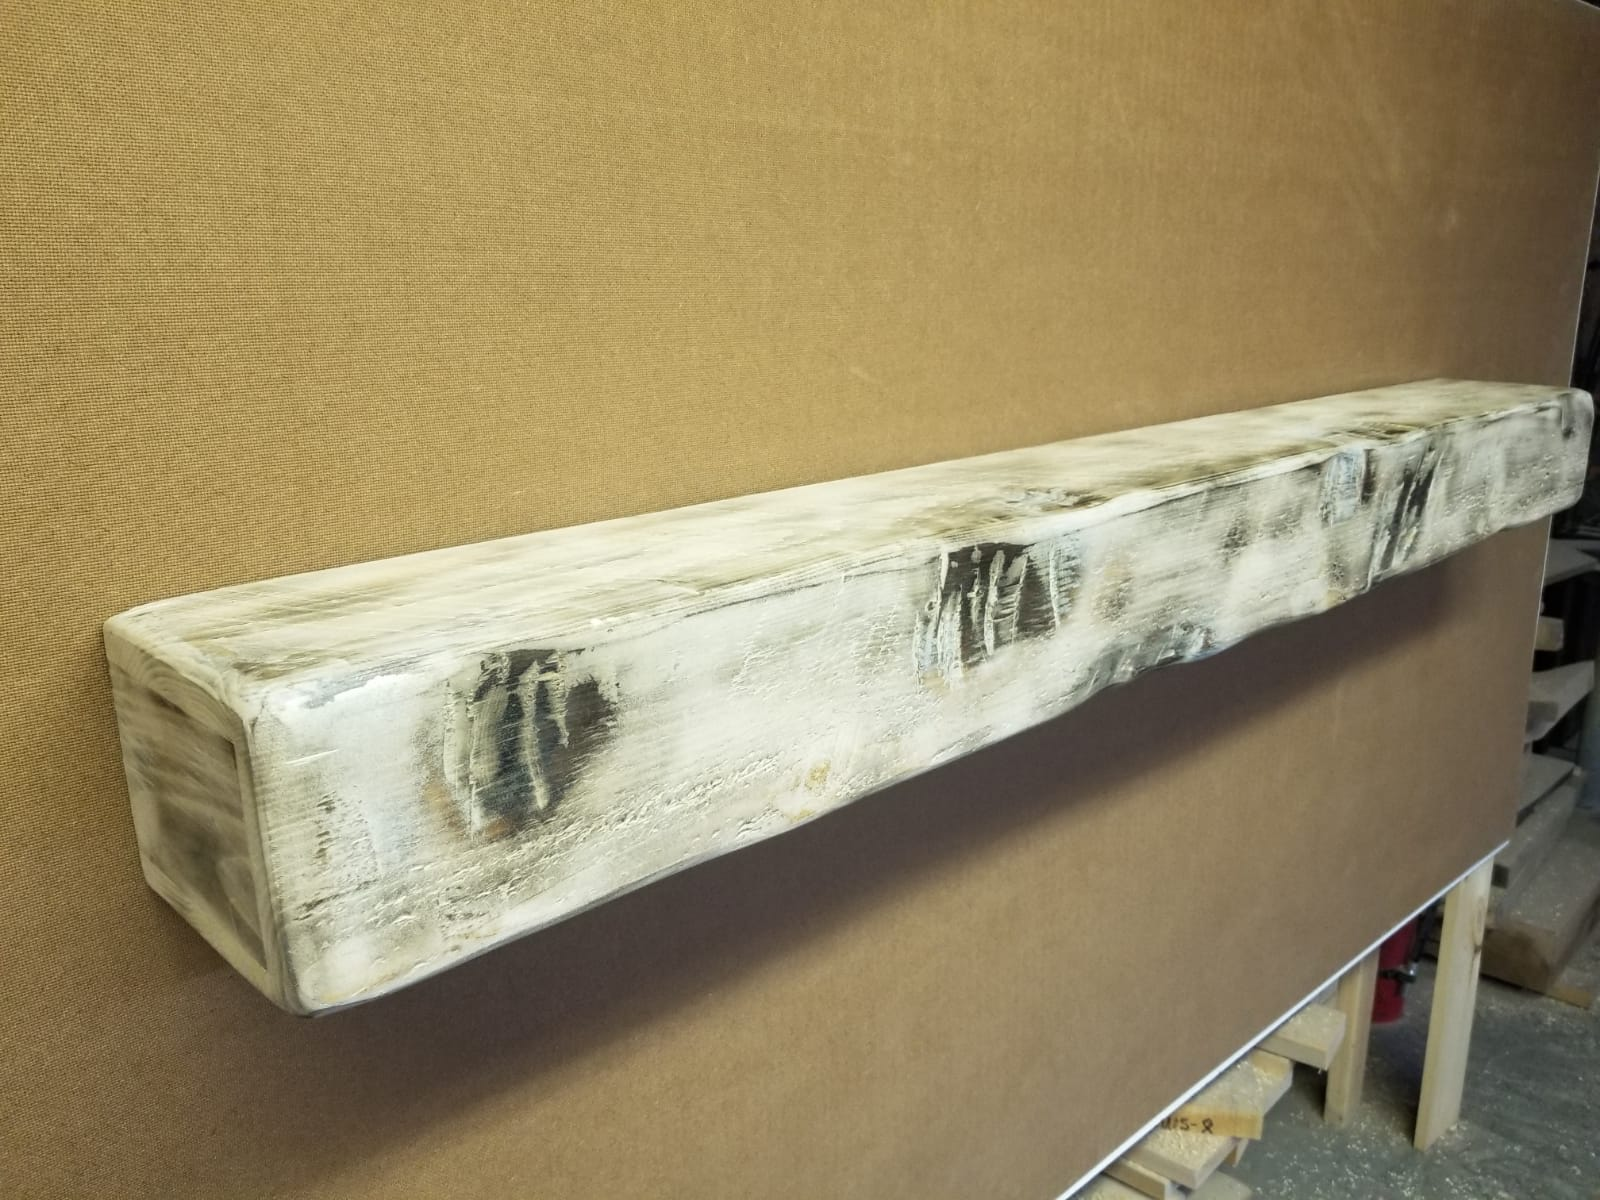 Whitewash Rustic Wood Fireplace Mantel Shelf Wood Mantel Shelf